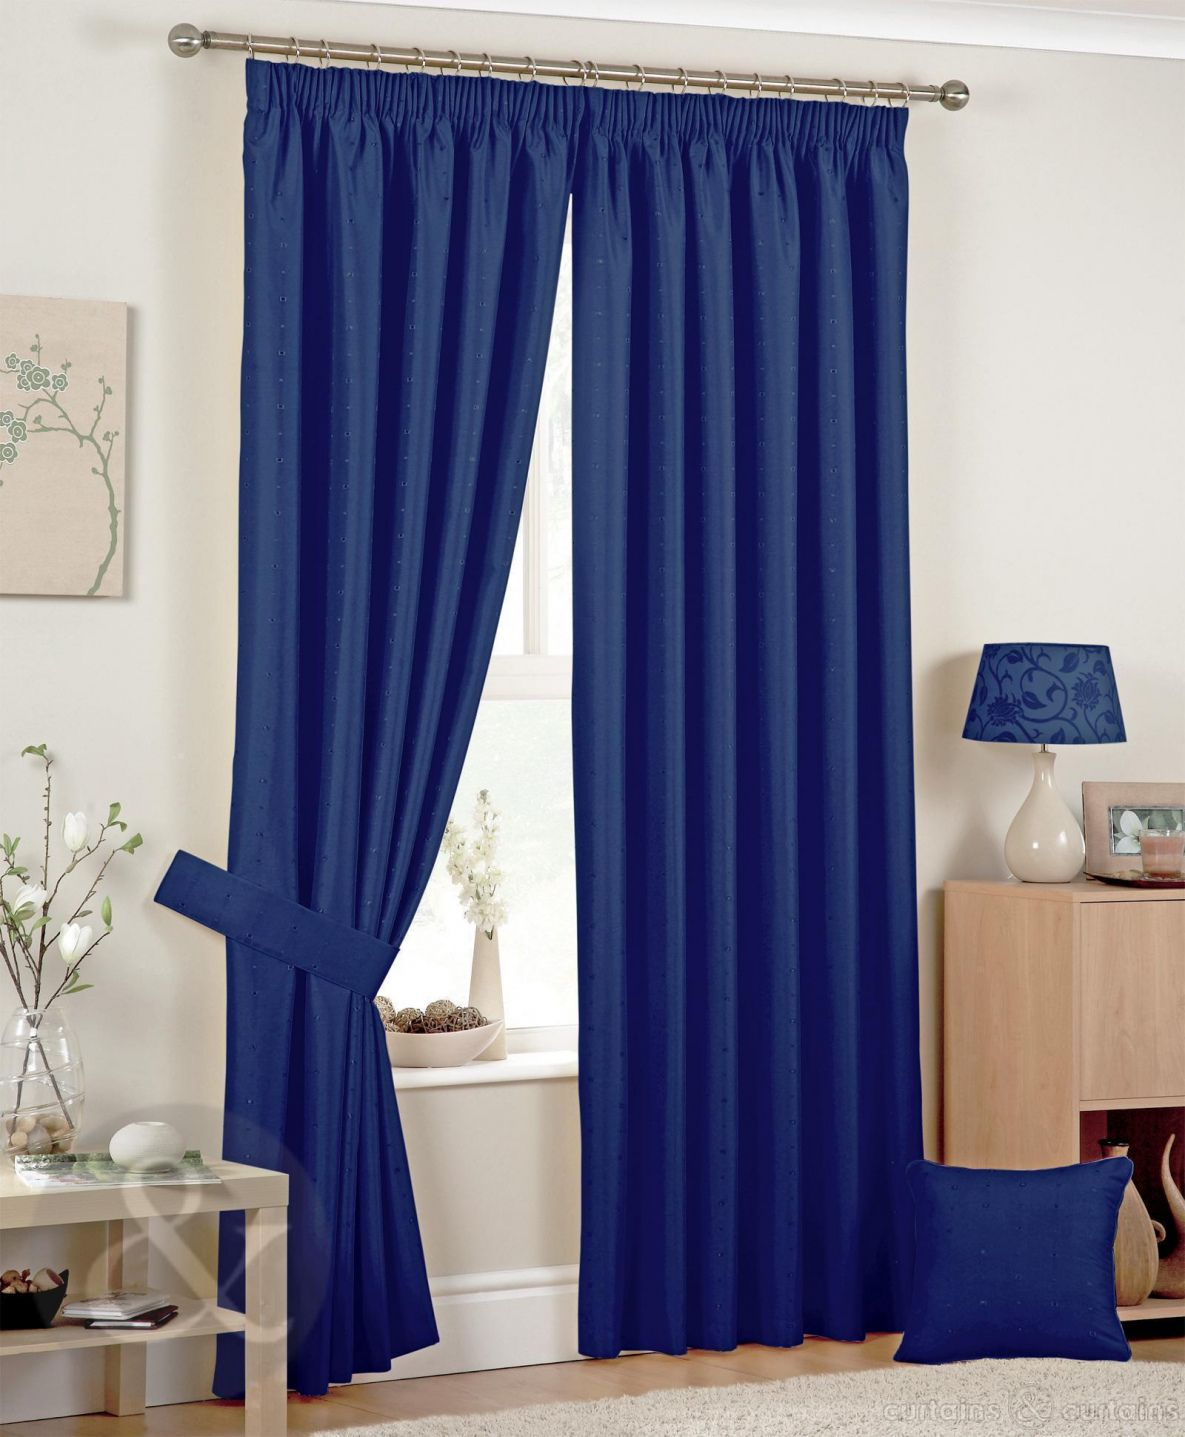 Pin by Leslie Benjamin on Home Office | Blue curtains for ...